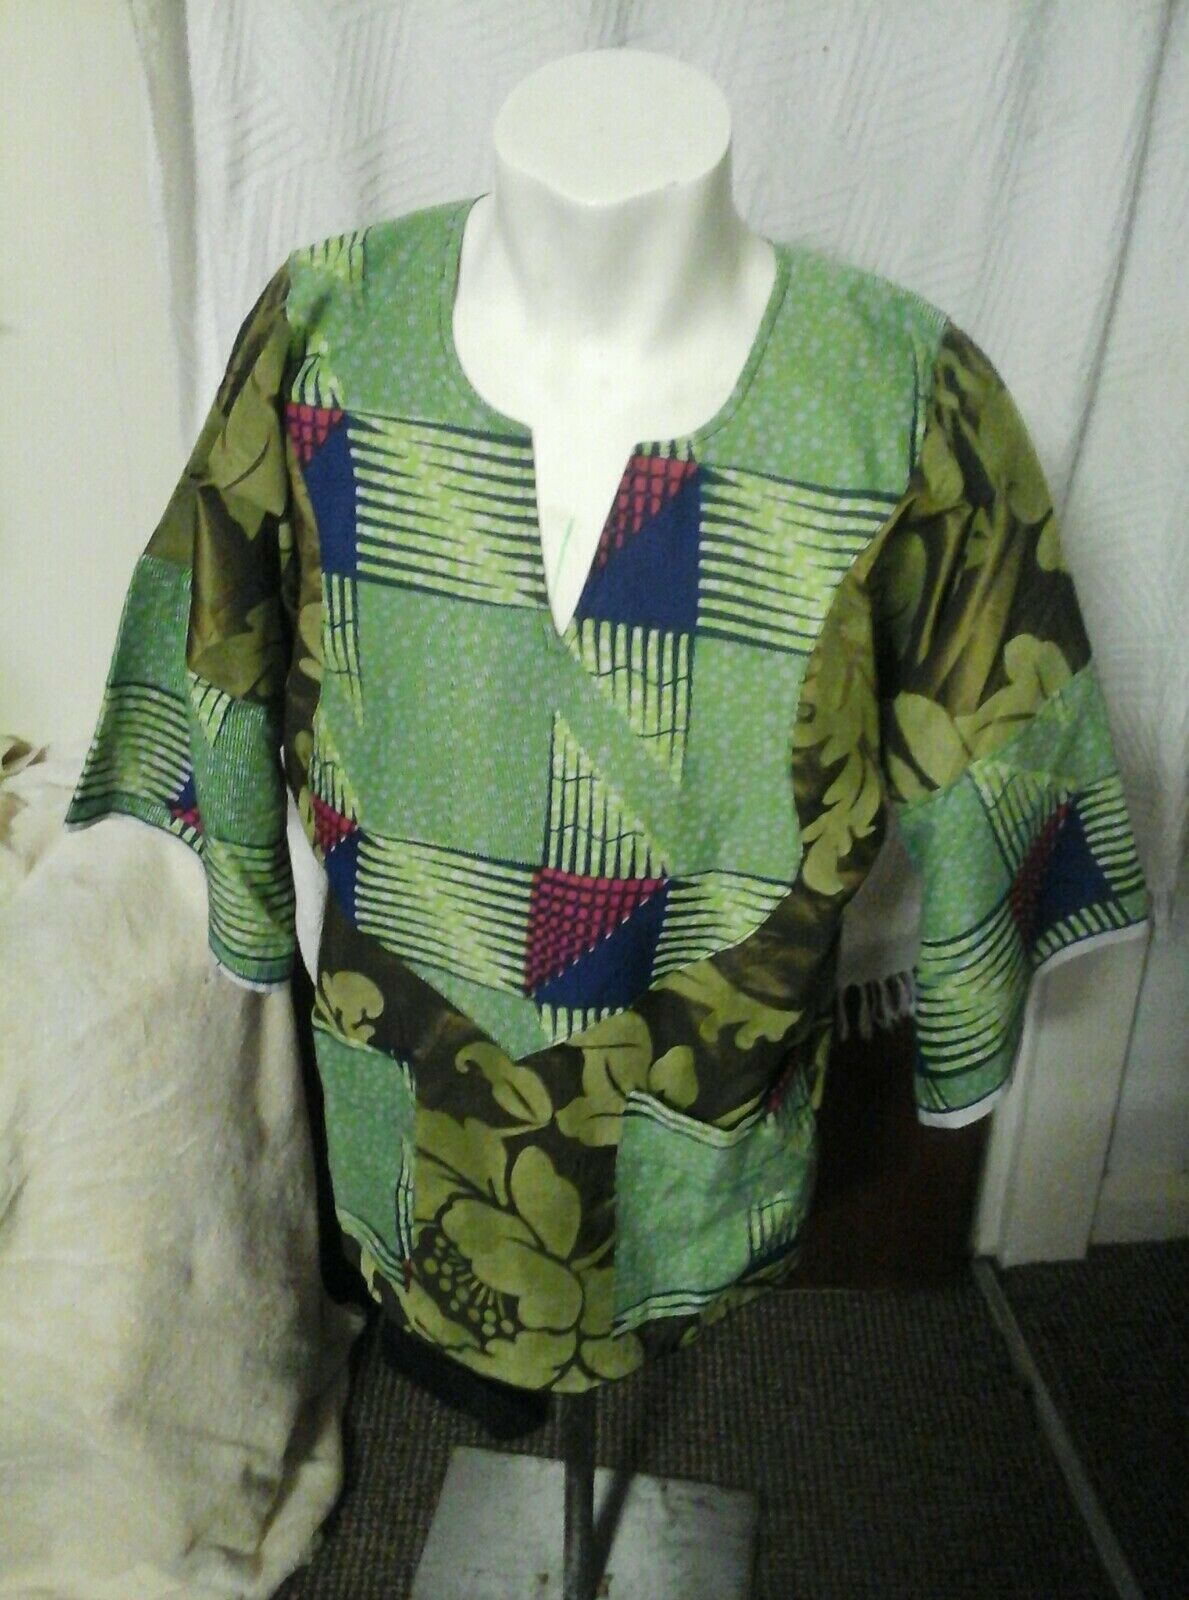 Homemade Men African Shirt Top free size. XL to fit chest 44Rin. Length 28ins